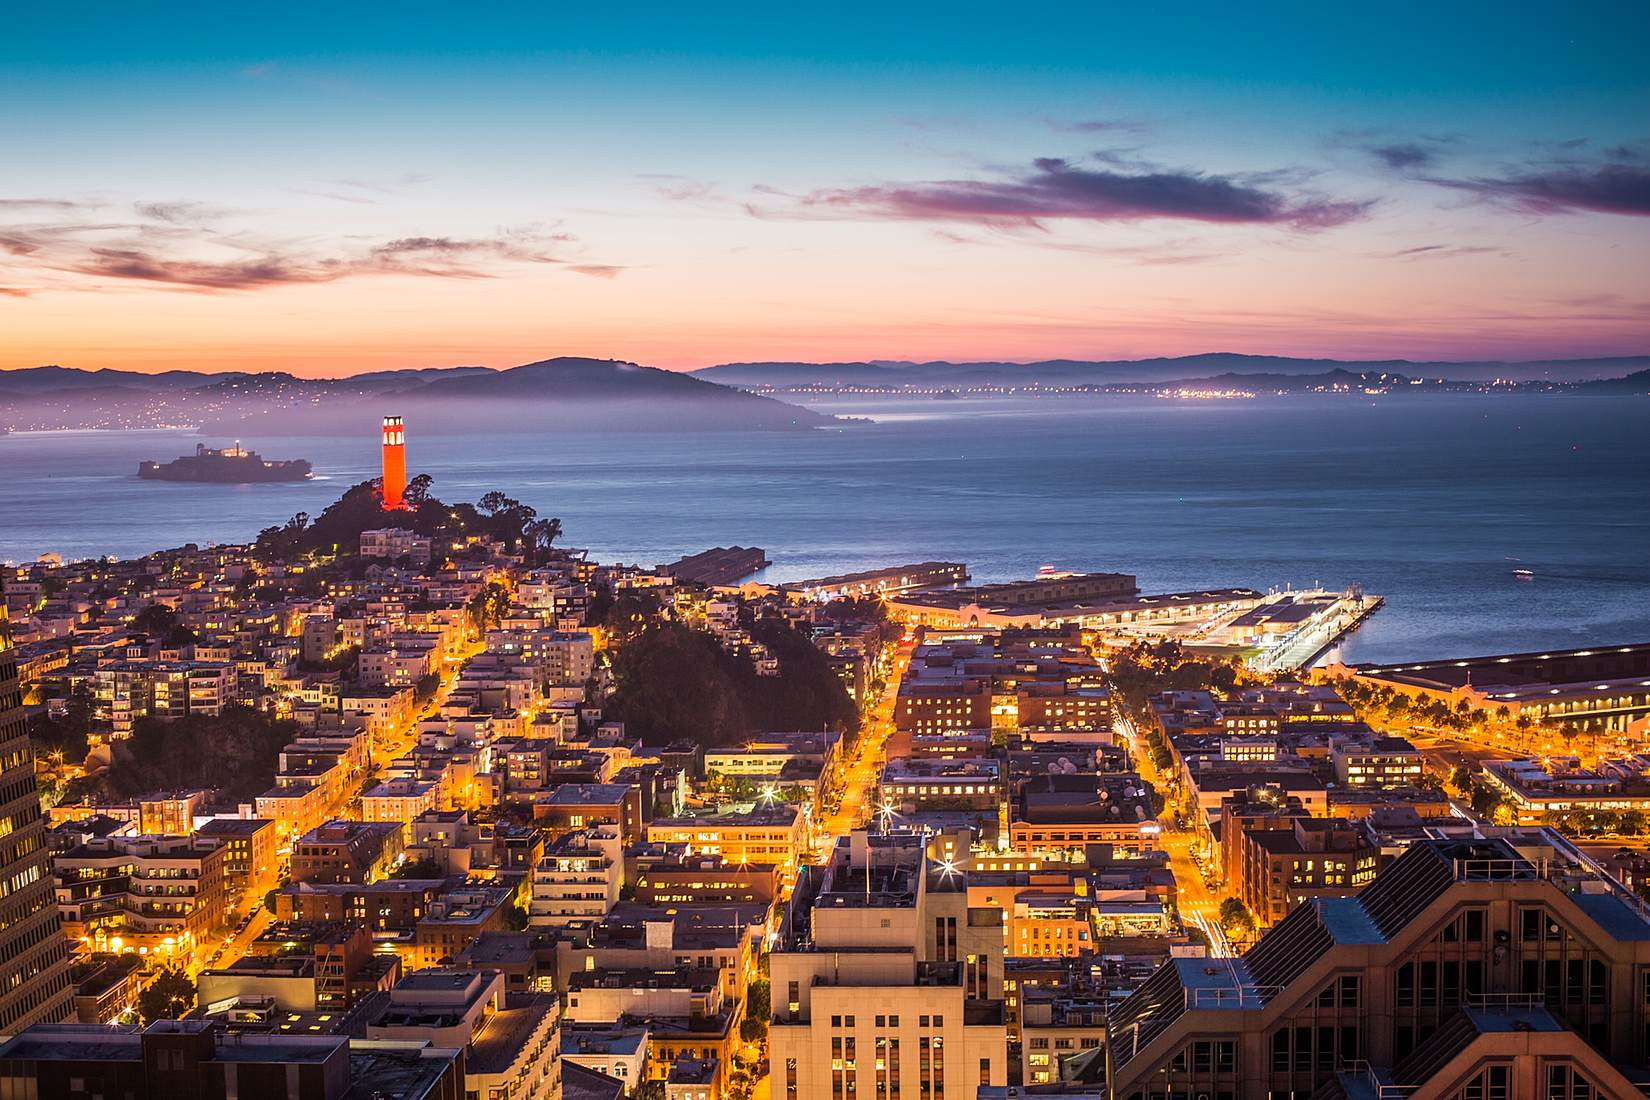 San Francisco At Night is the most successful PREMIUM collection yet! — picjumbo BLOG